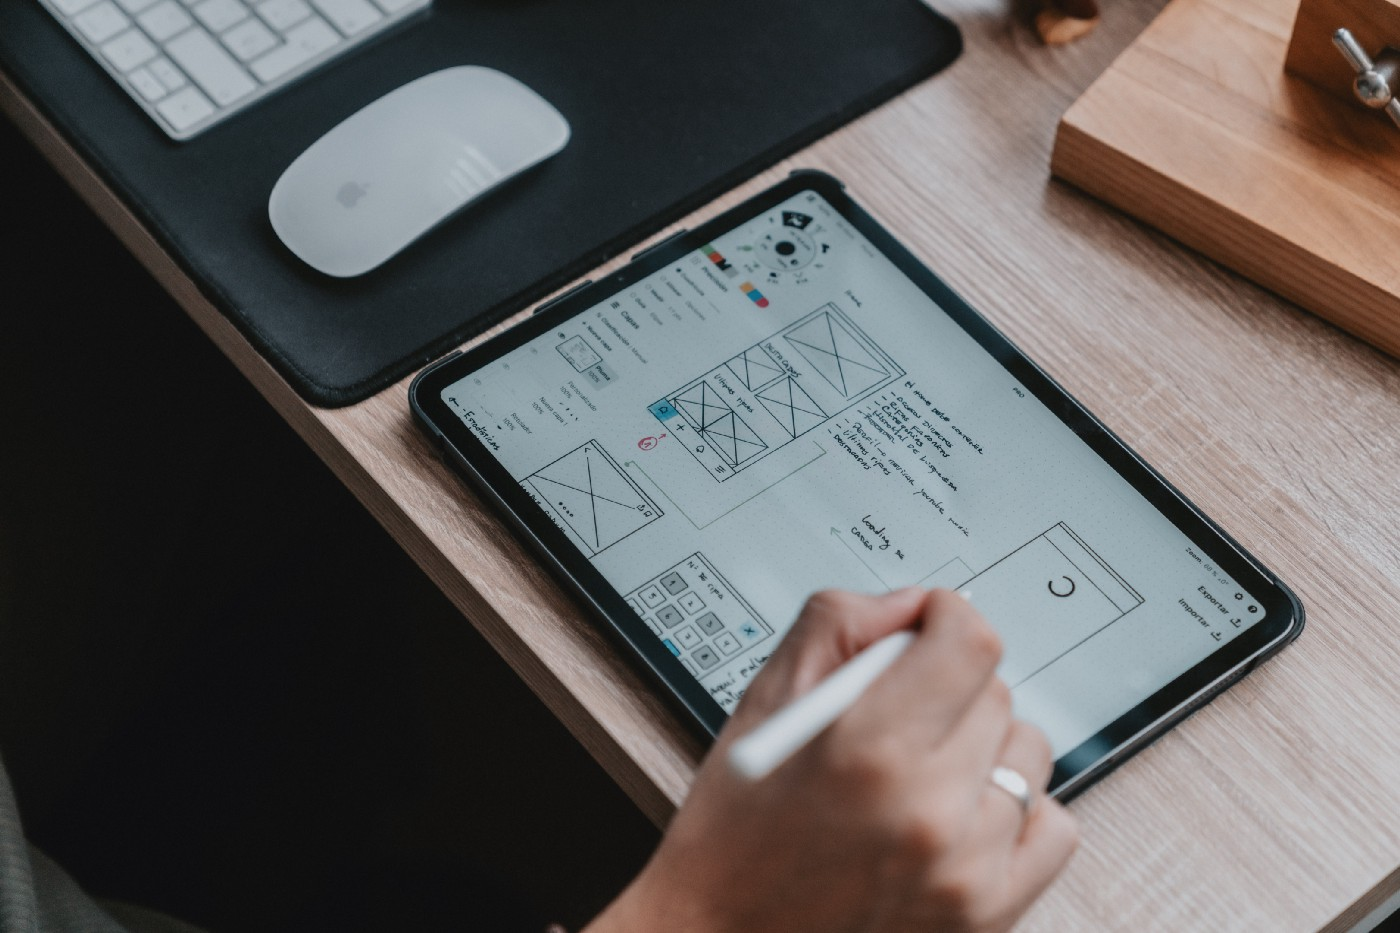 A designer working on UX design project on an I-pad